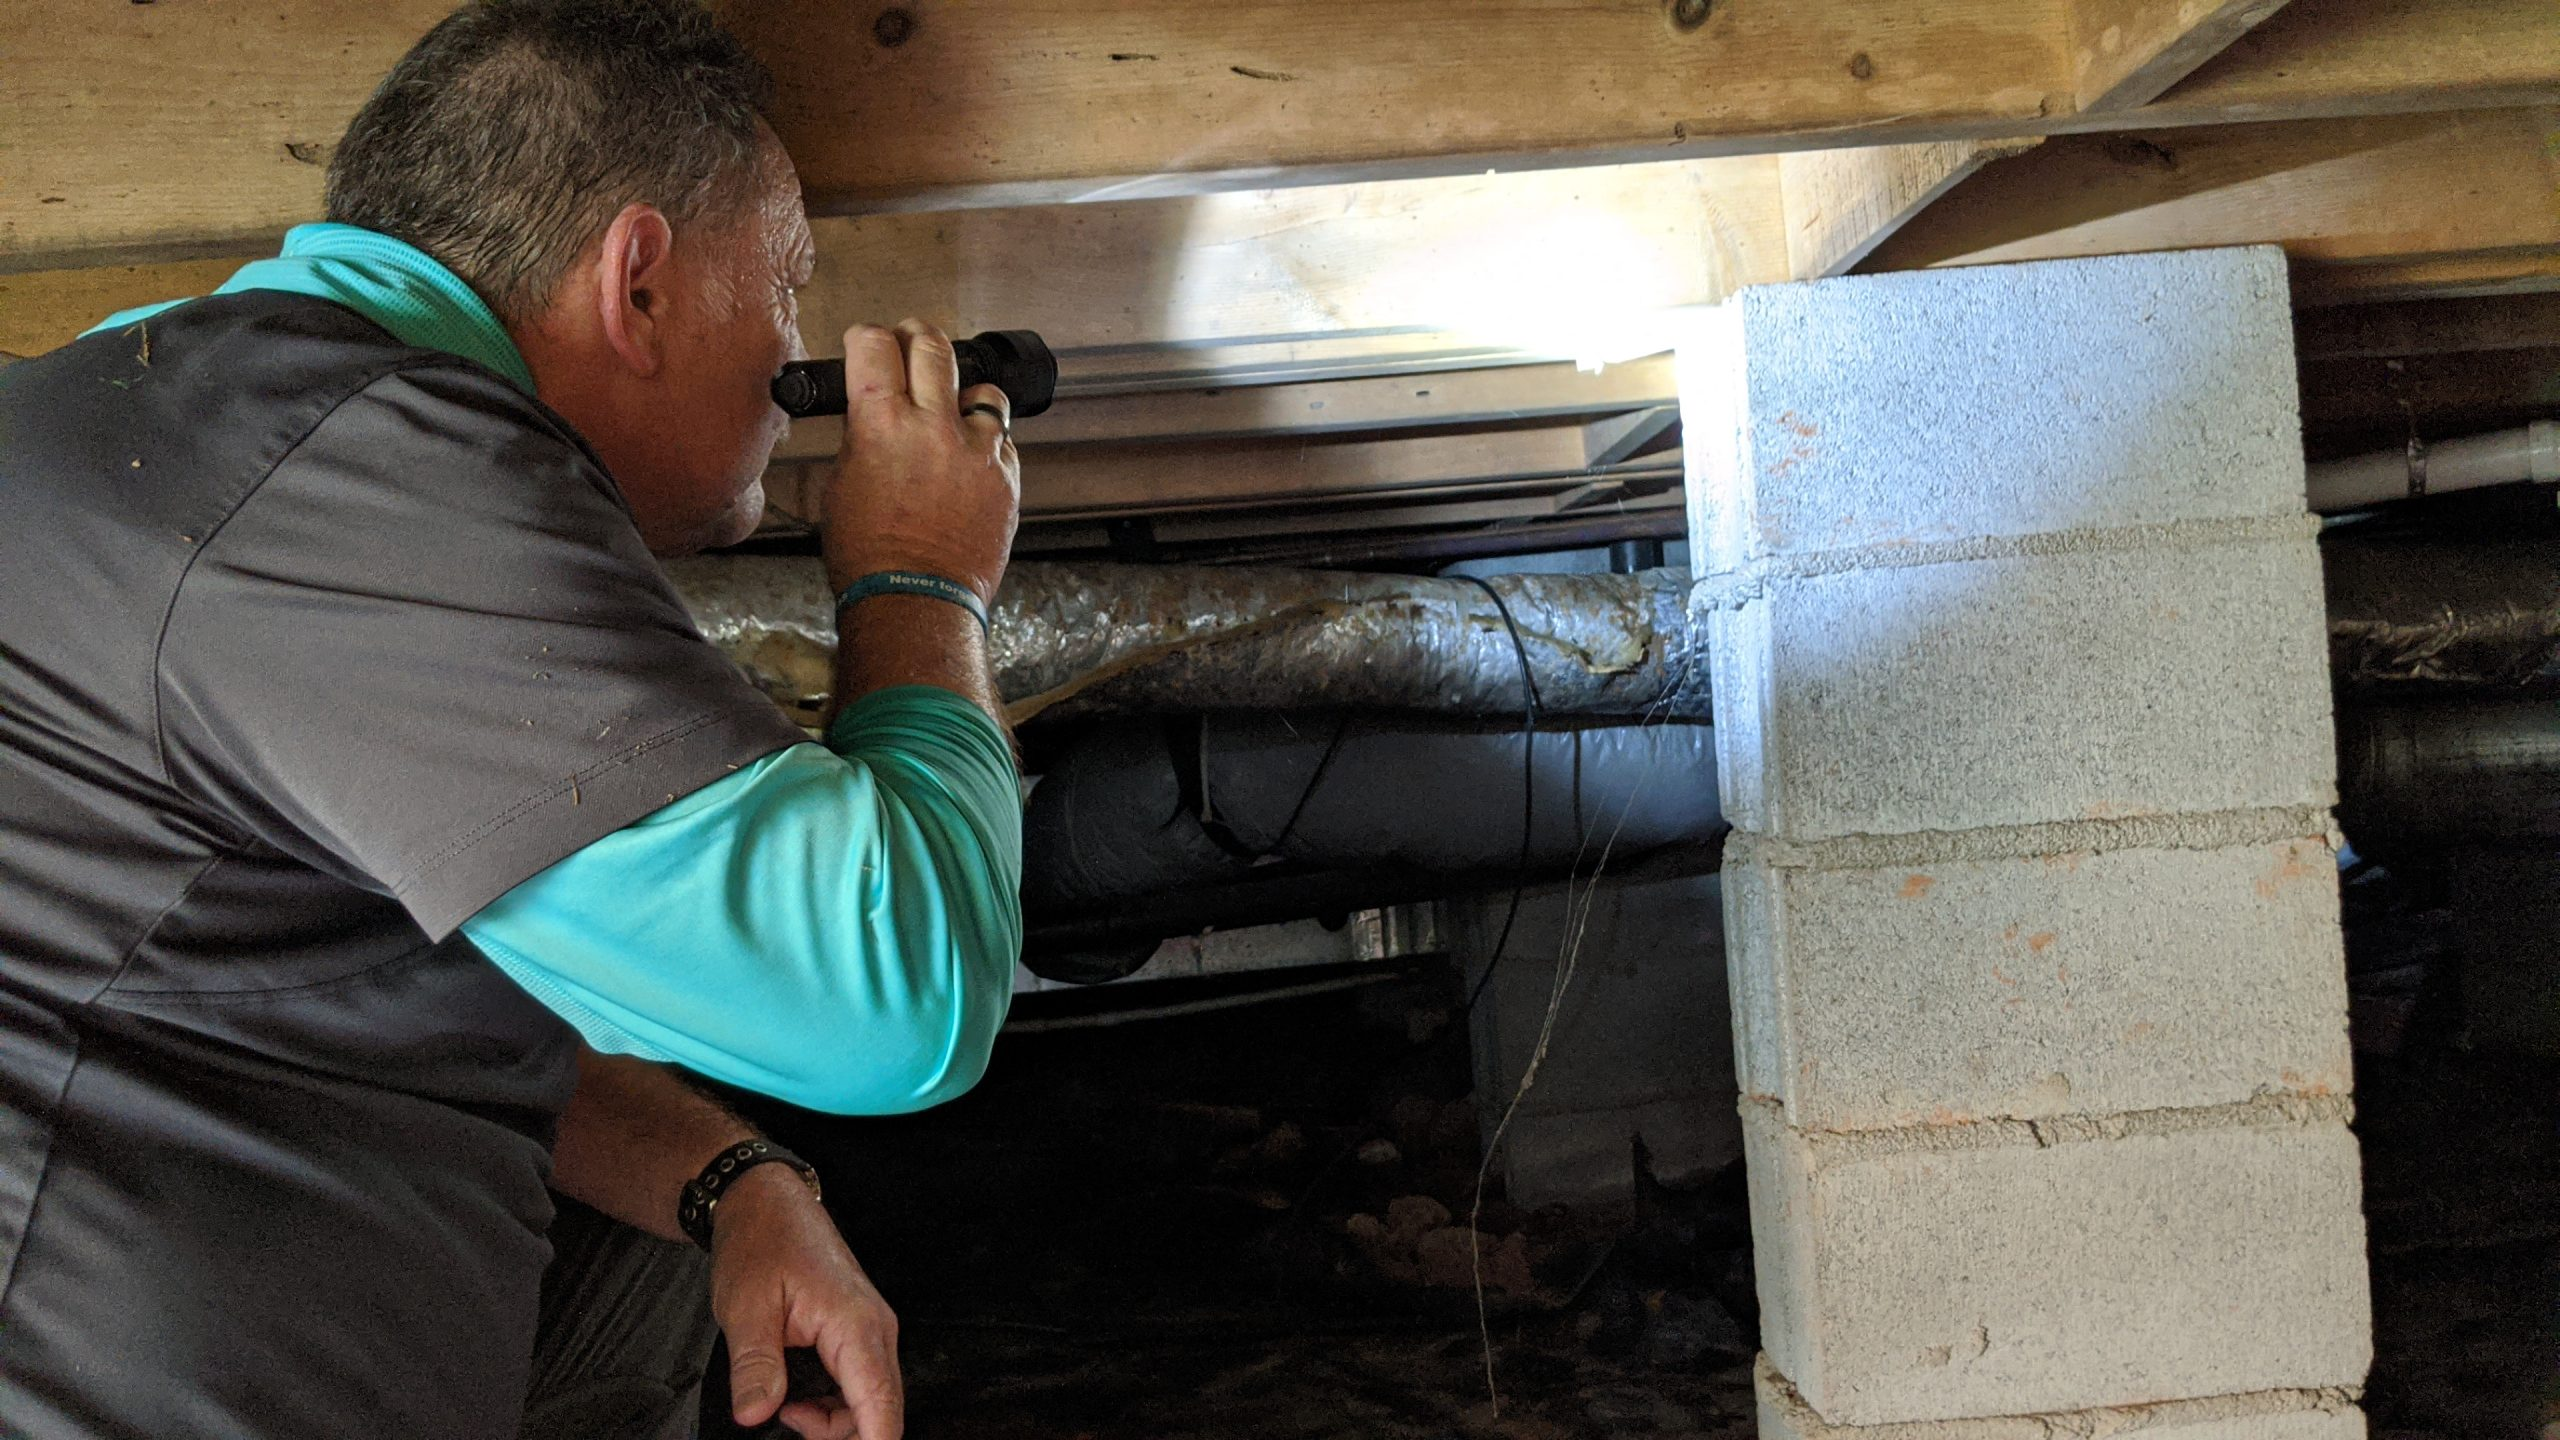 Pest Control Technician looking for signs of moisture and fungus in crawlspace